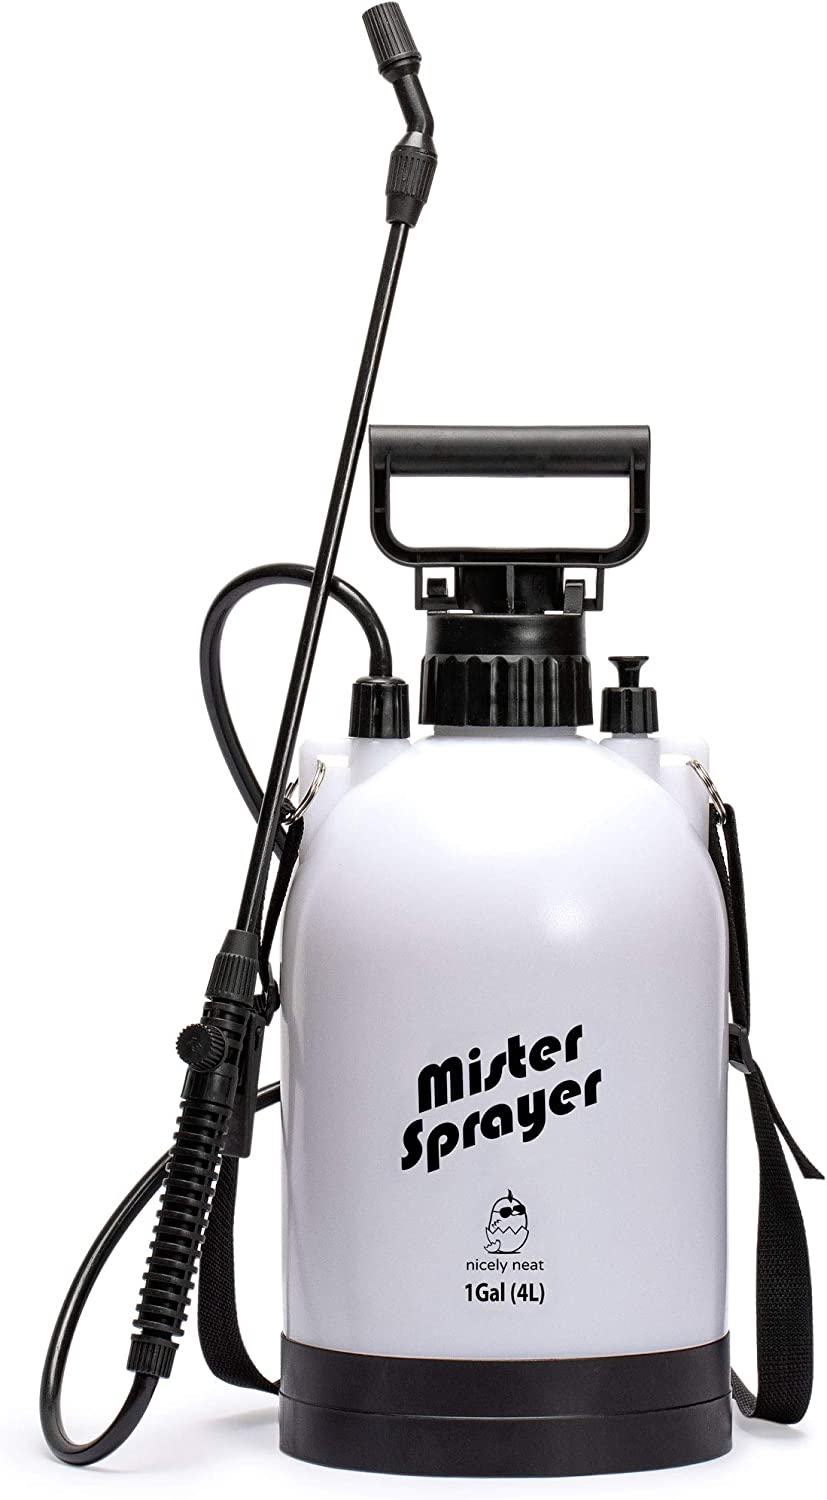 Nicely Neat Water Mister & Spray Bottle for Plants & Gardens - Mr. Mister, 4 Liters